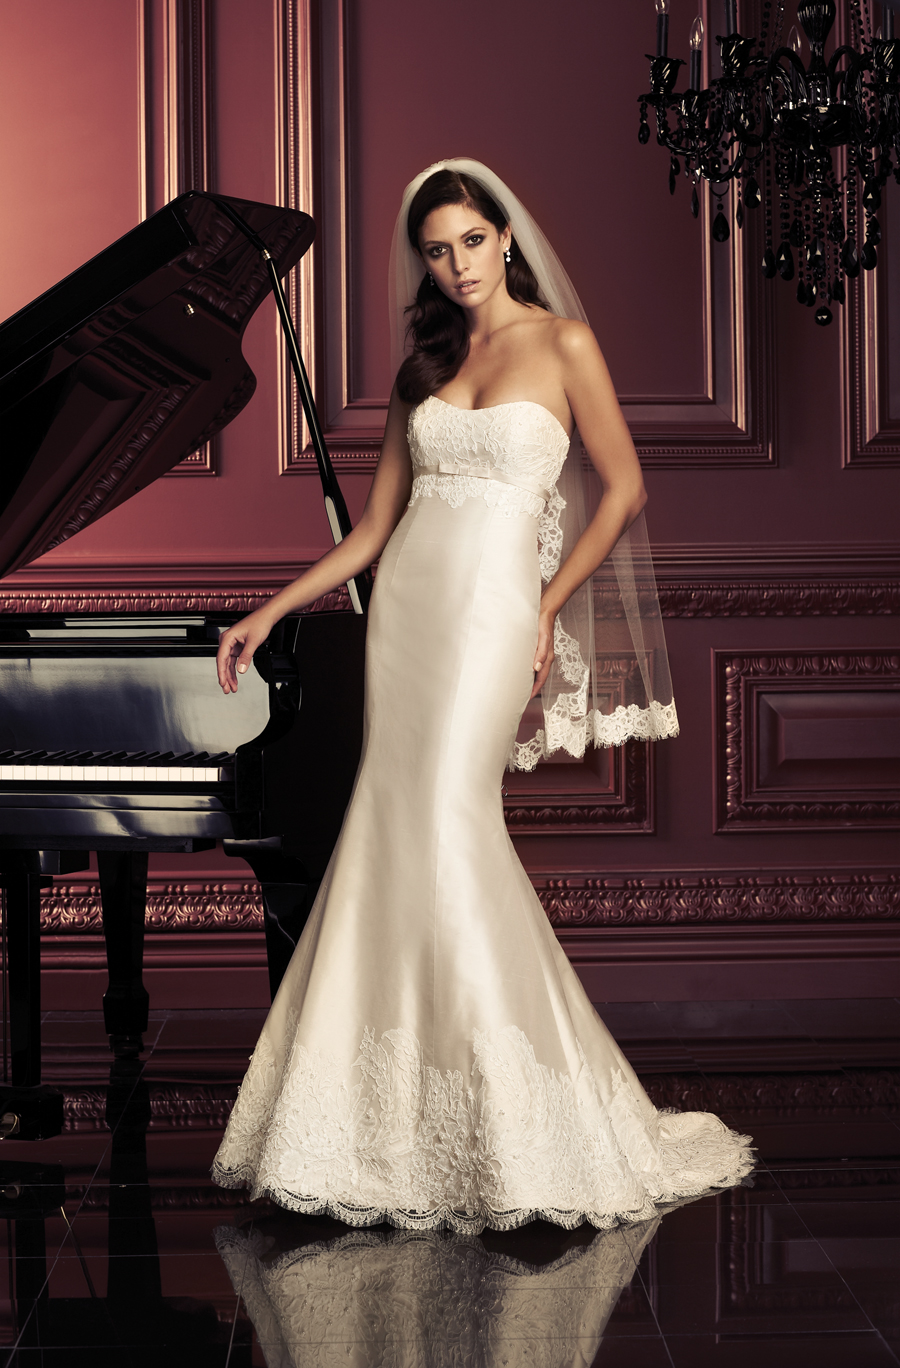 New dresses in stock now! — The Bridal Boutique